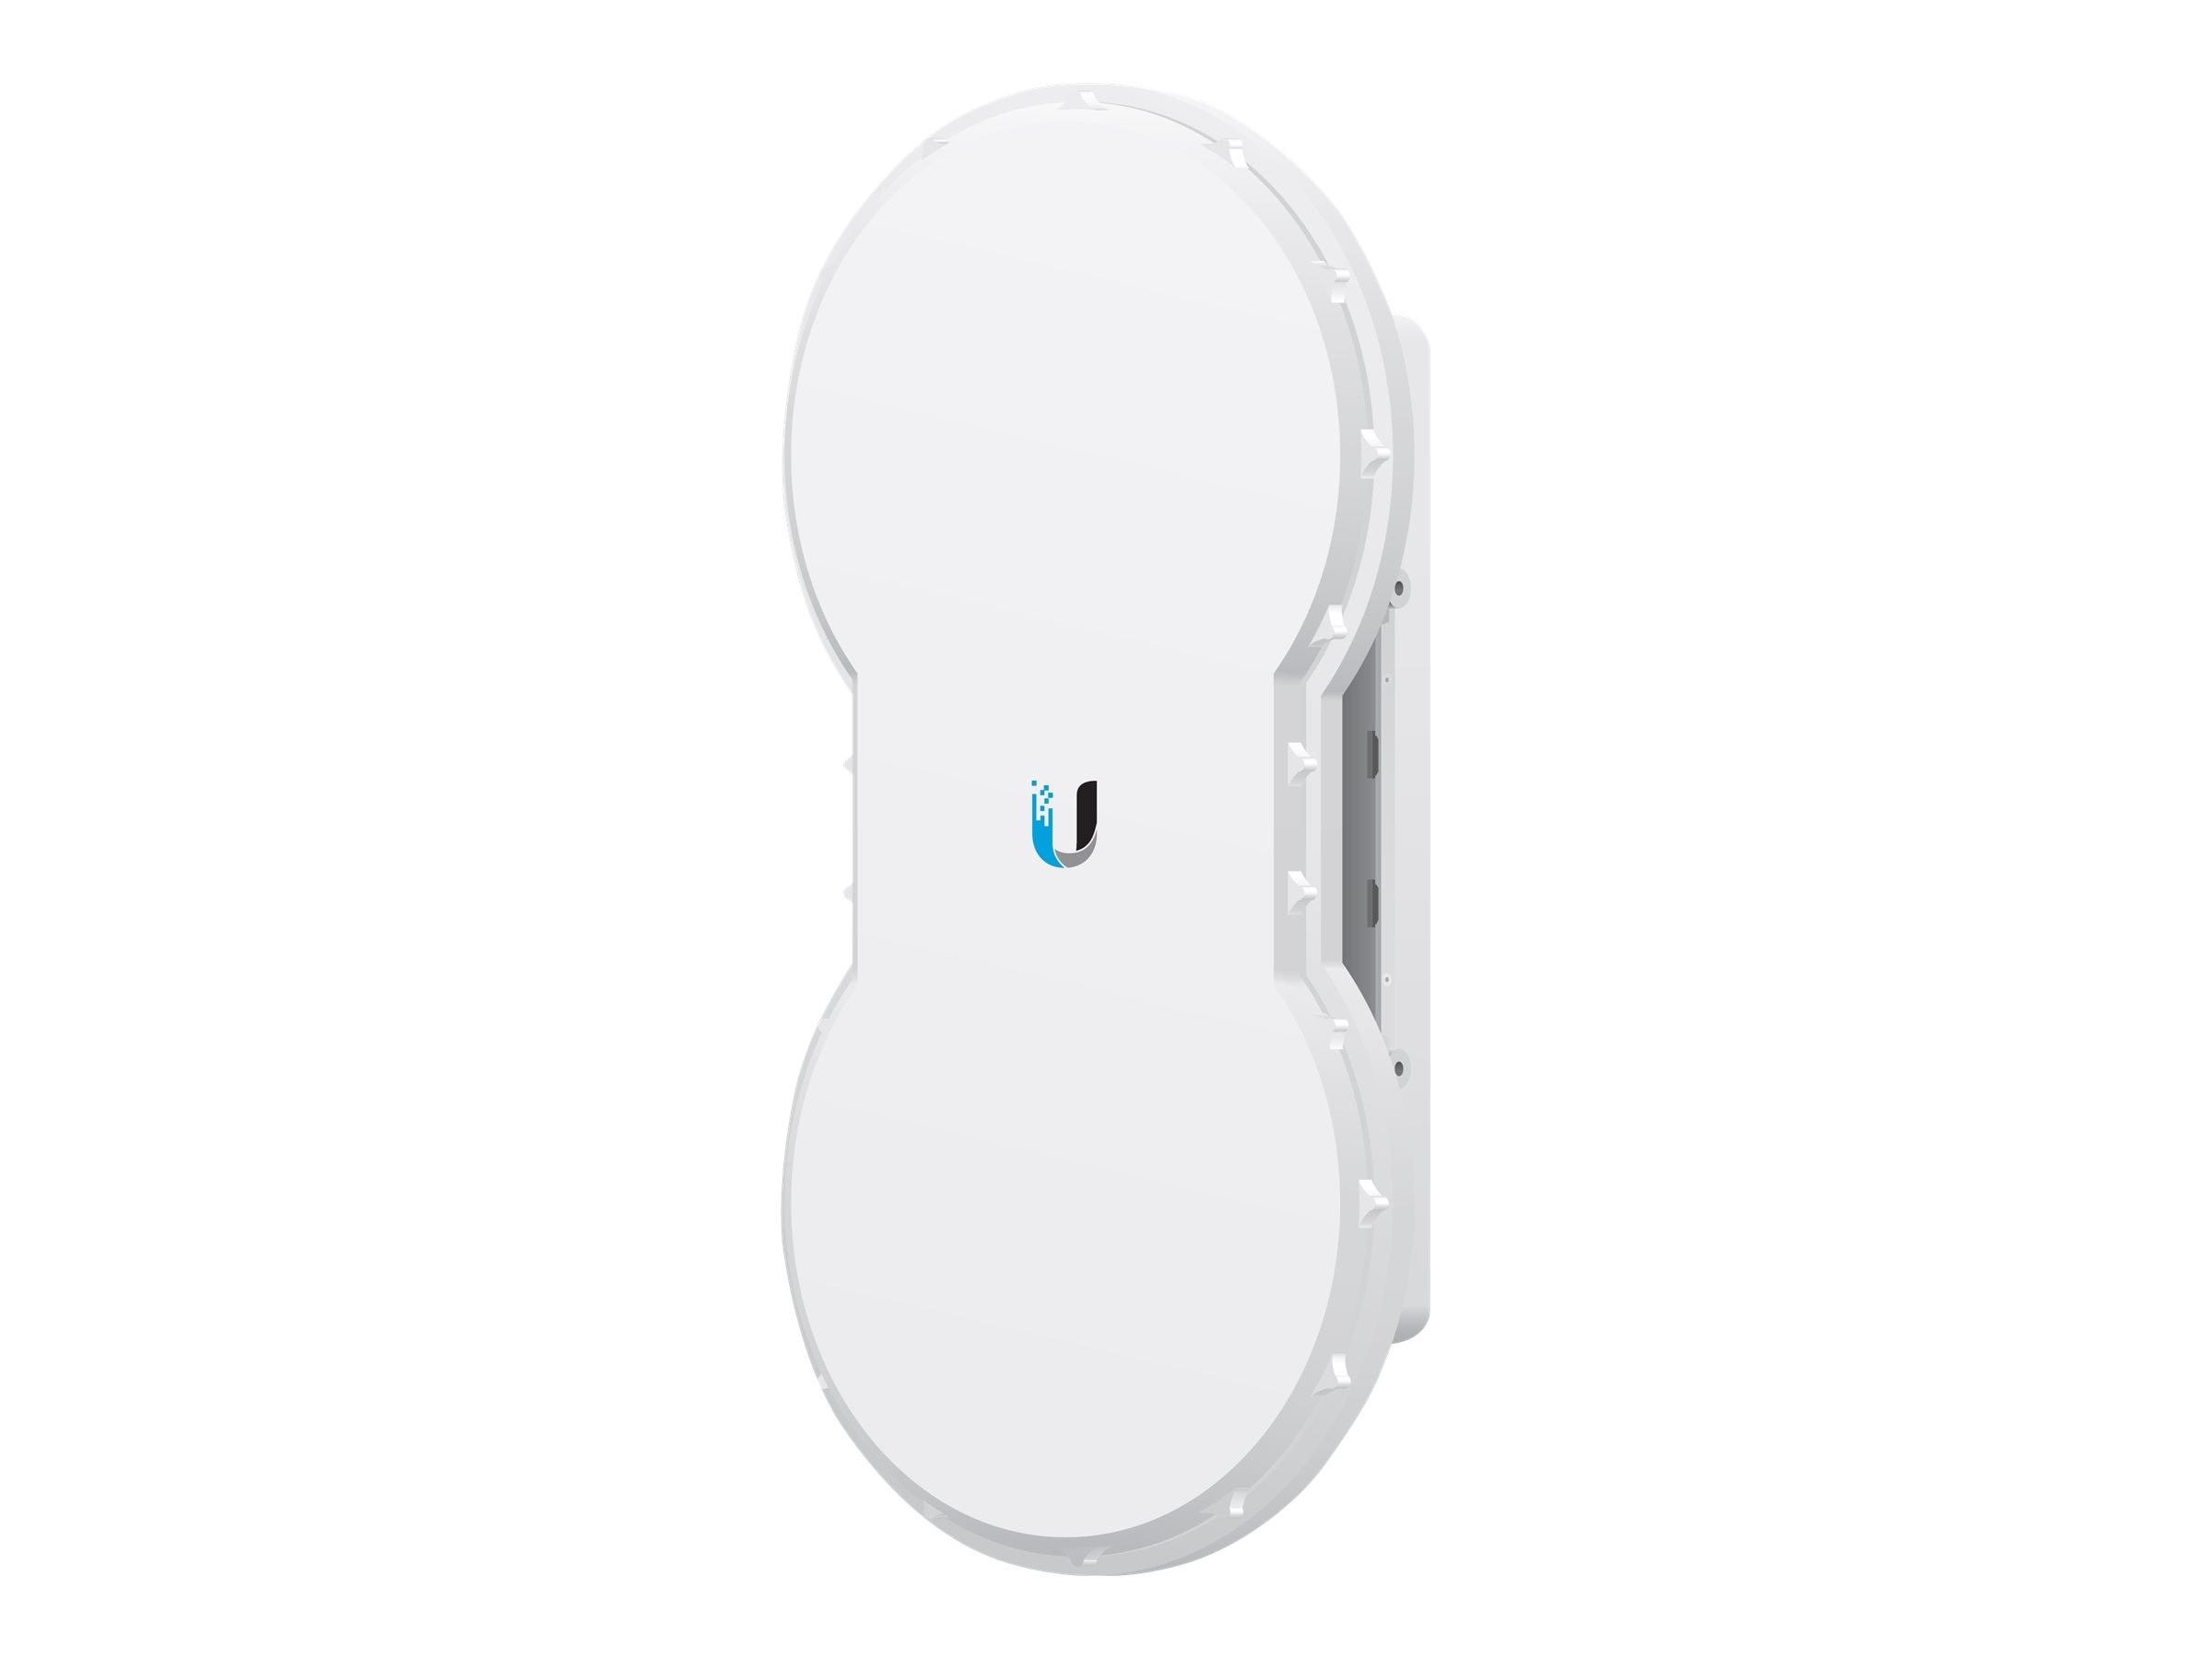 Ubiquiti airFiber 5GHz Wireless Bridge, AF-5U, 30910101, Wireless Access Points & Bridges